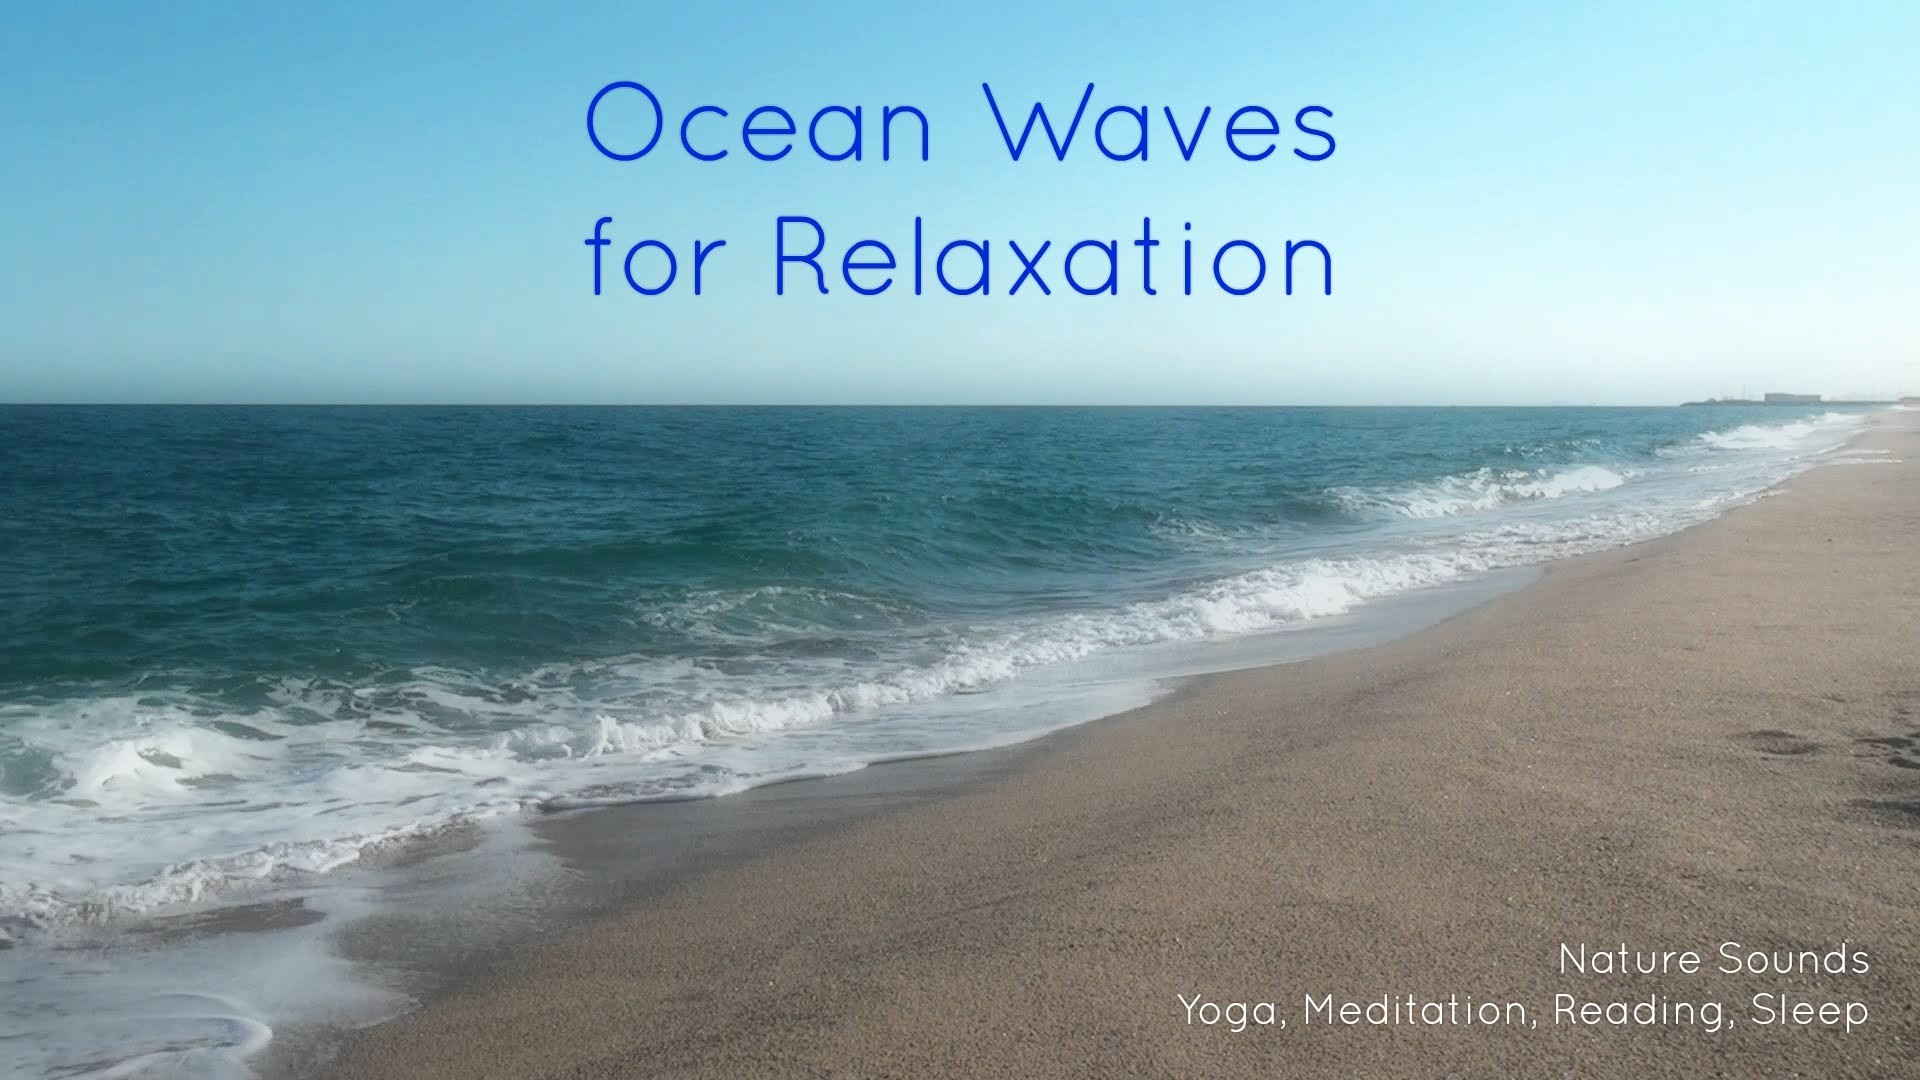 Nature Sounds Ocean Waves for relaxation, yoga, meditation, reading, sleep,  study [ Sleep Music ] – YouTube